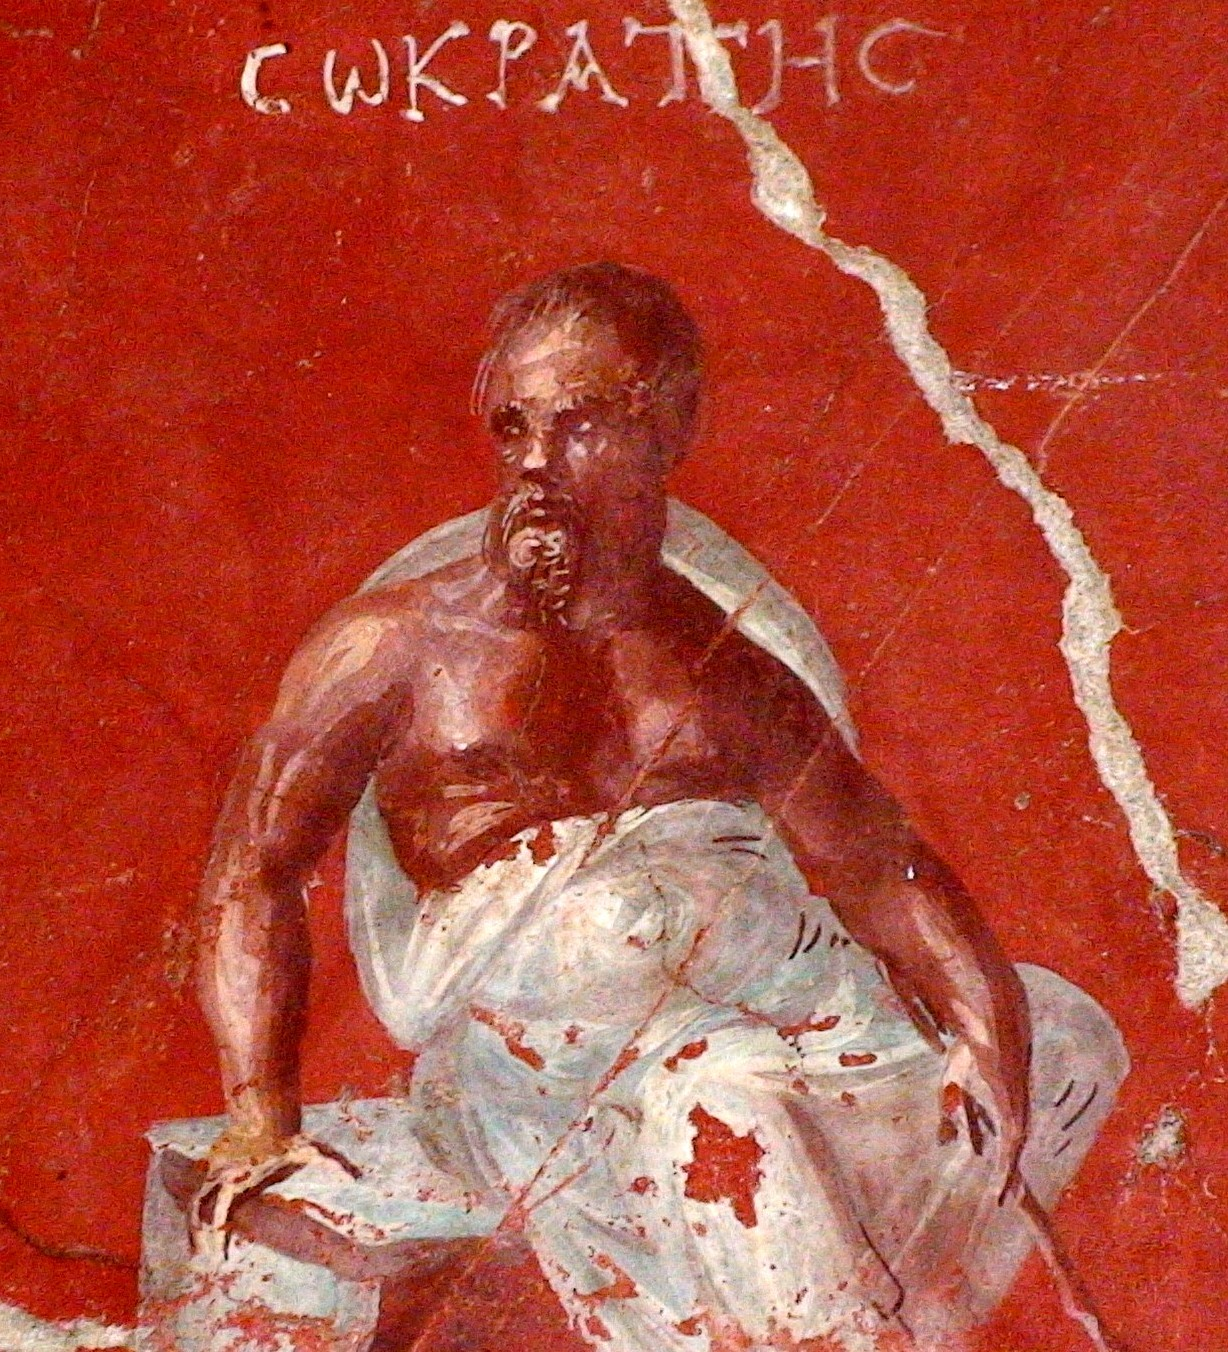 icirc pound icirc copy icirc brvbar icirc iexcl icirc icirc pound icirc yen icirc icirc the apology of socrates part i socrates also at the beginning of his speech states that ldquohe doesn t have great skill as a